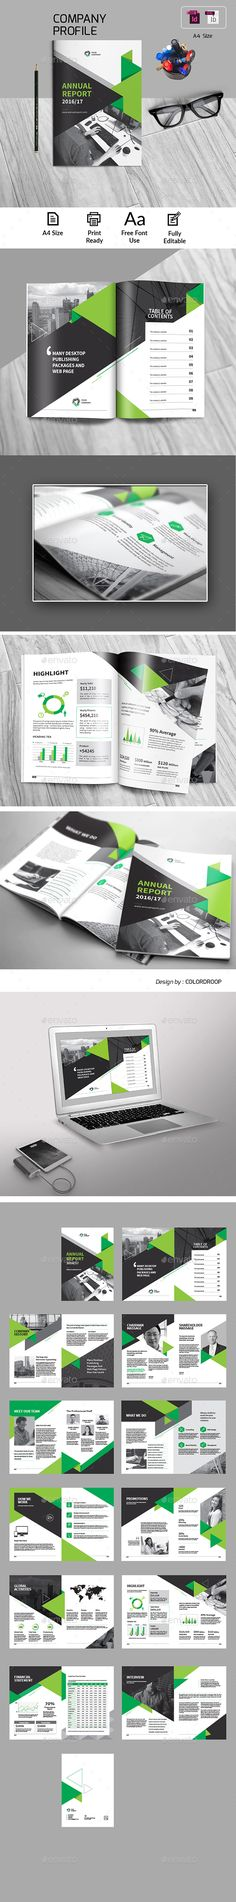 Annual Report Template InDesign INDD - 26 Pages